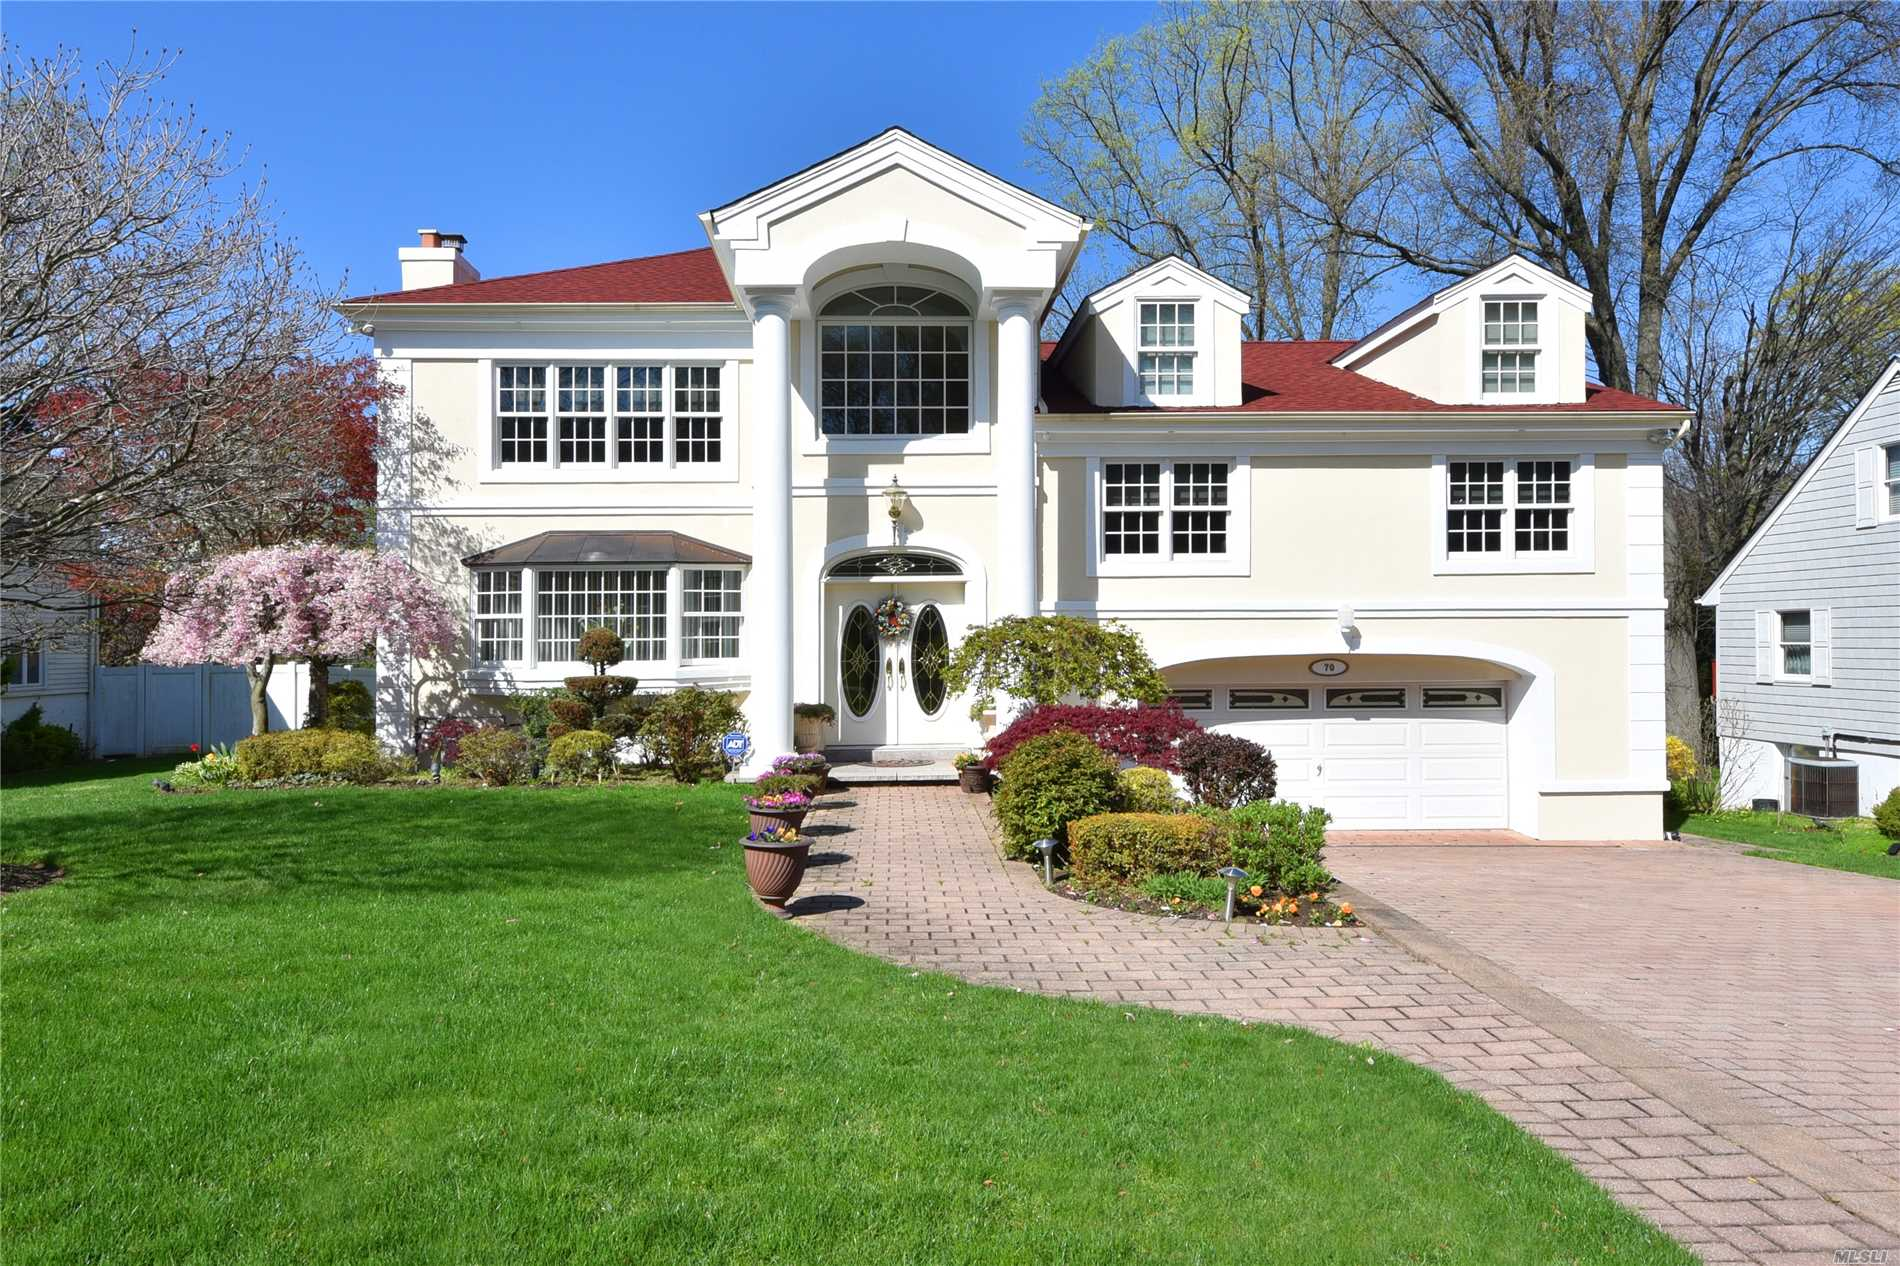 70 Pinewood Rd - Manhasset, New York